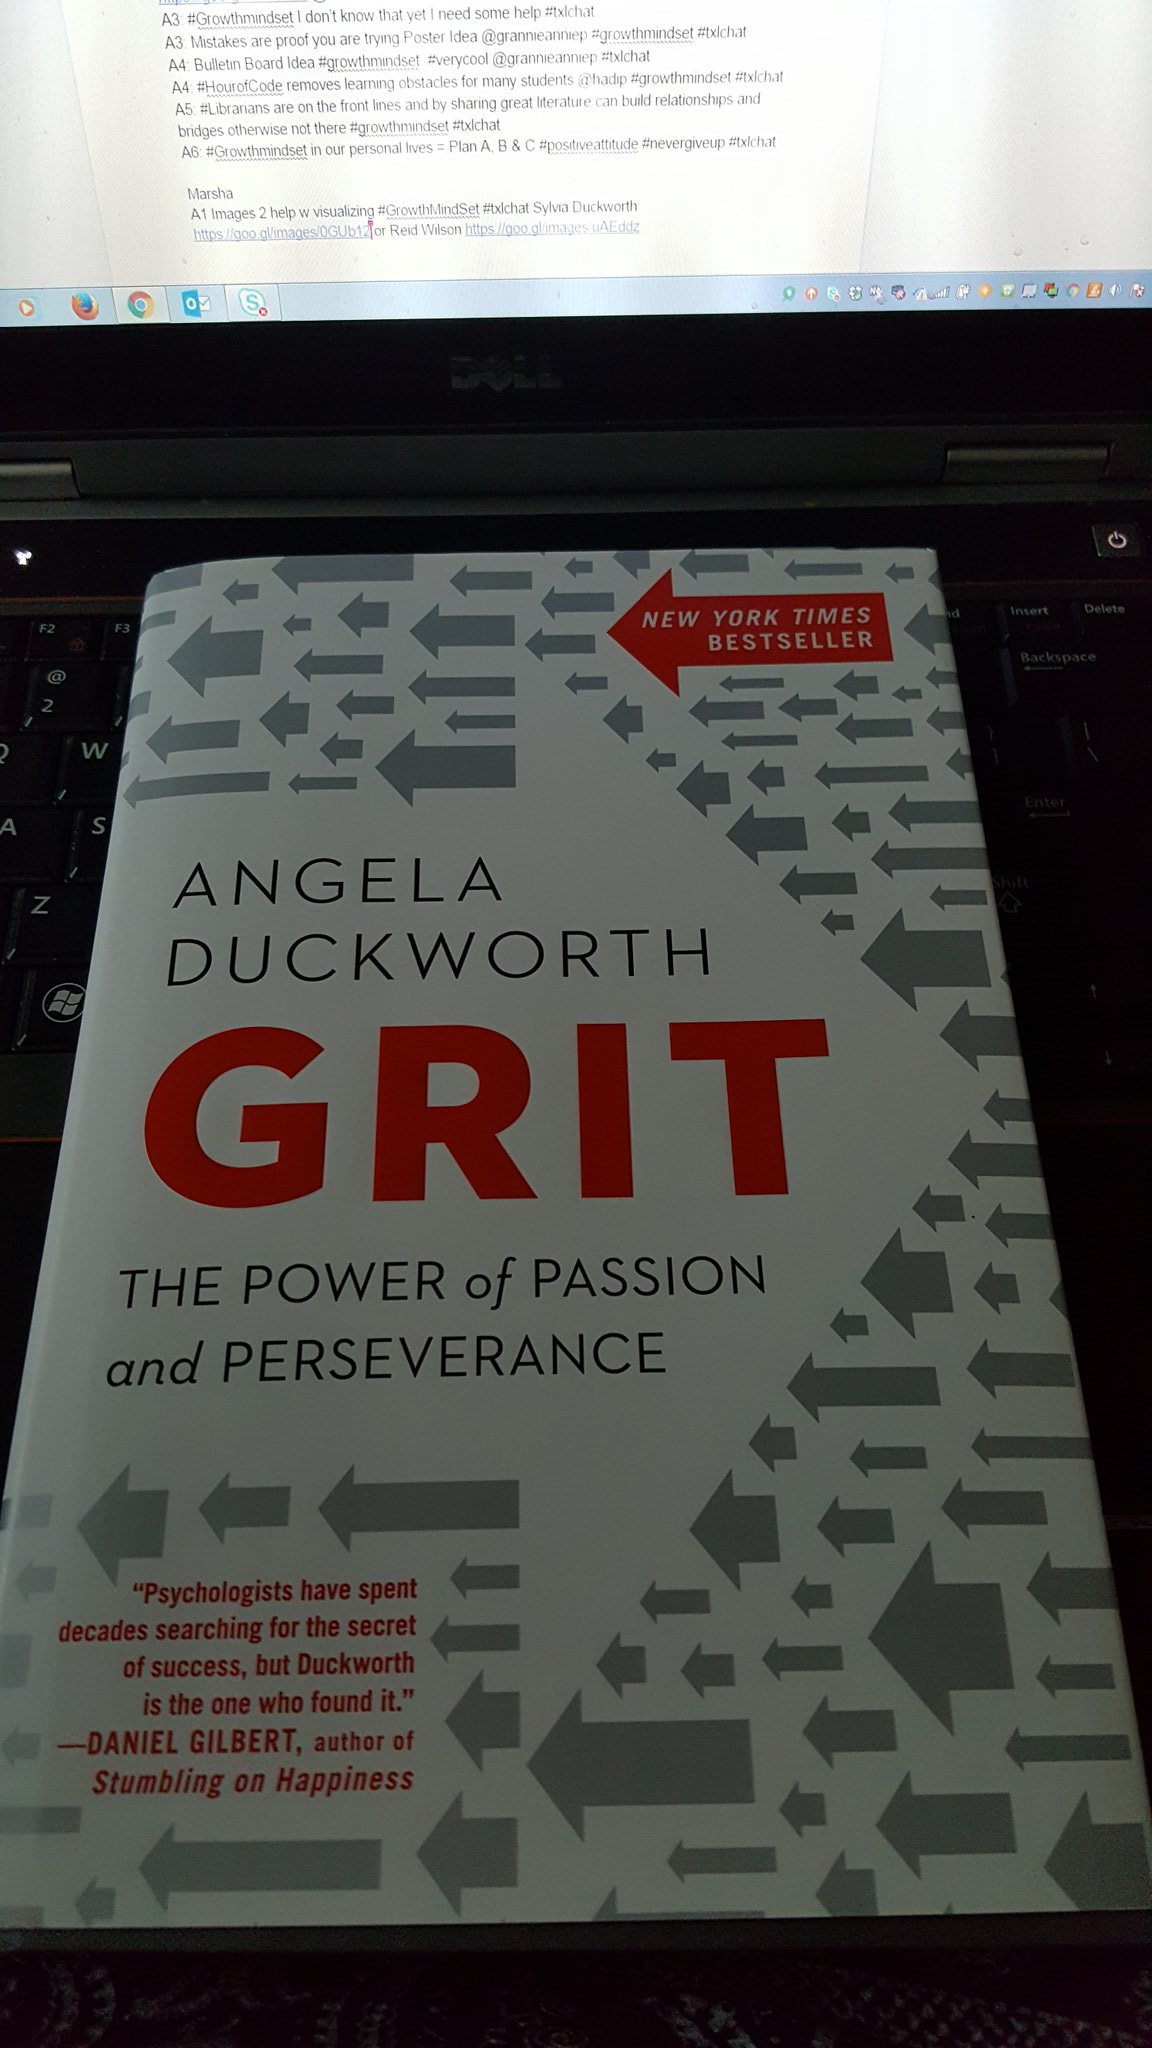 @angeladuckw Everything you need to know about #growthmindset #Grit #txlchat https://t.co/EXzSAsch2v